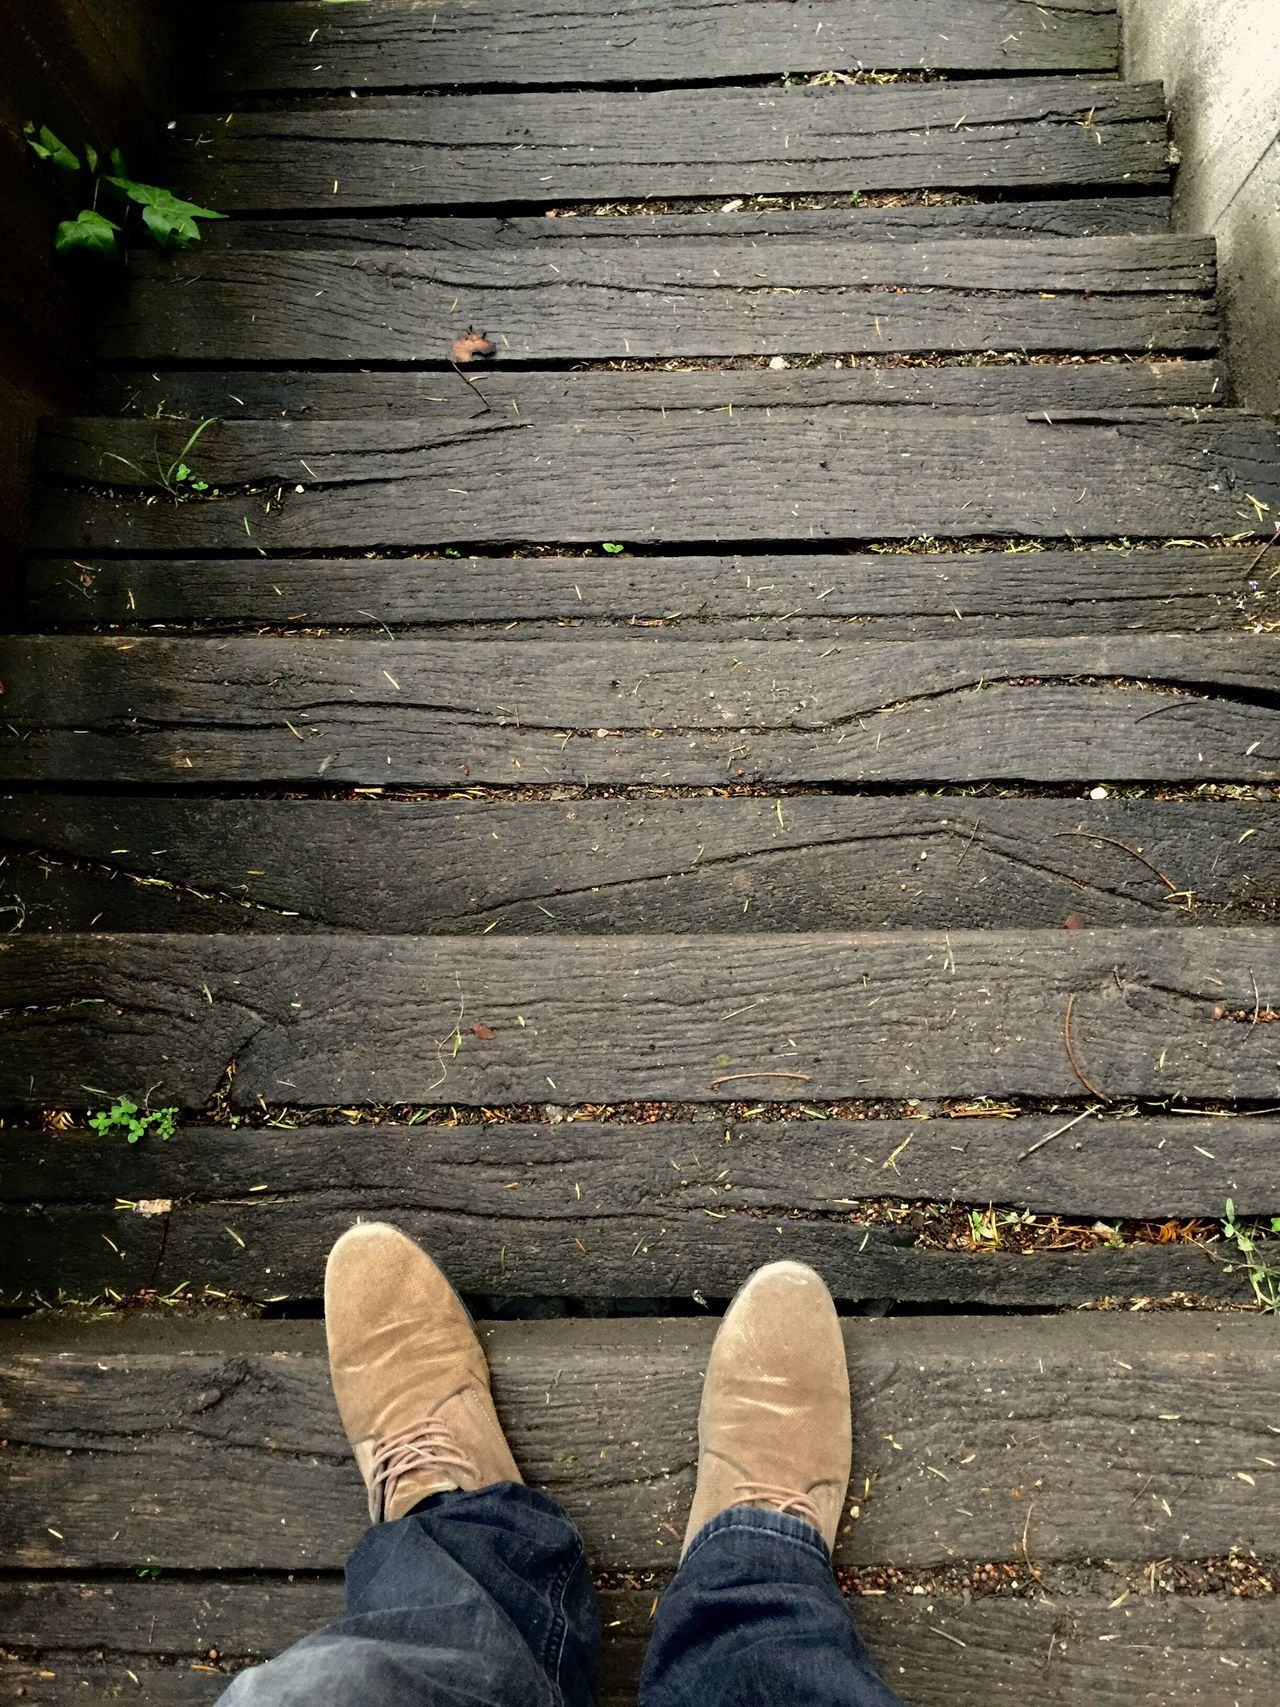 Stairs Walking In My Shoes. Walk My Shoes Enjoying Life Wooden Quo Vadis Sopron Showing Impercetion Streetphotography My Favorite Photo Brown Salamander BYOPaper!